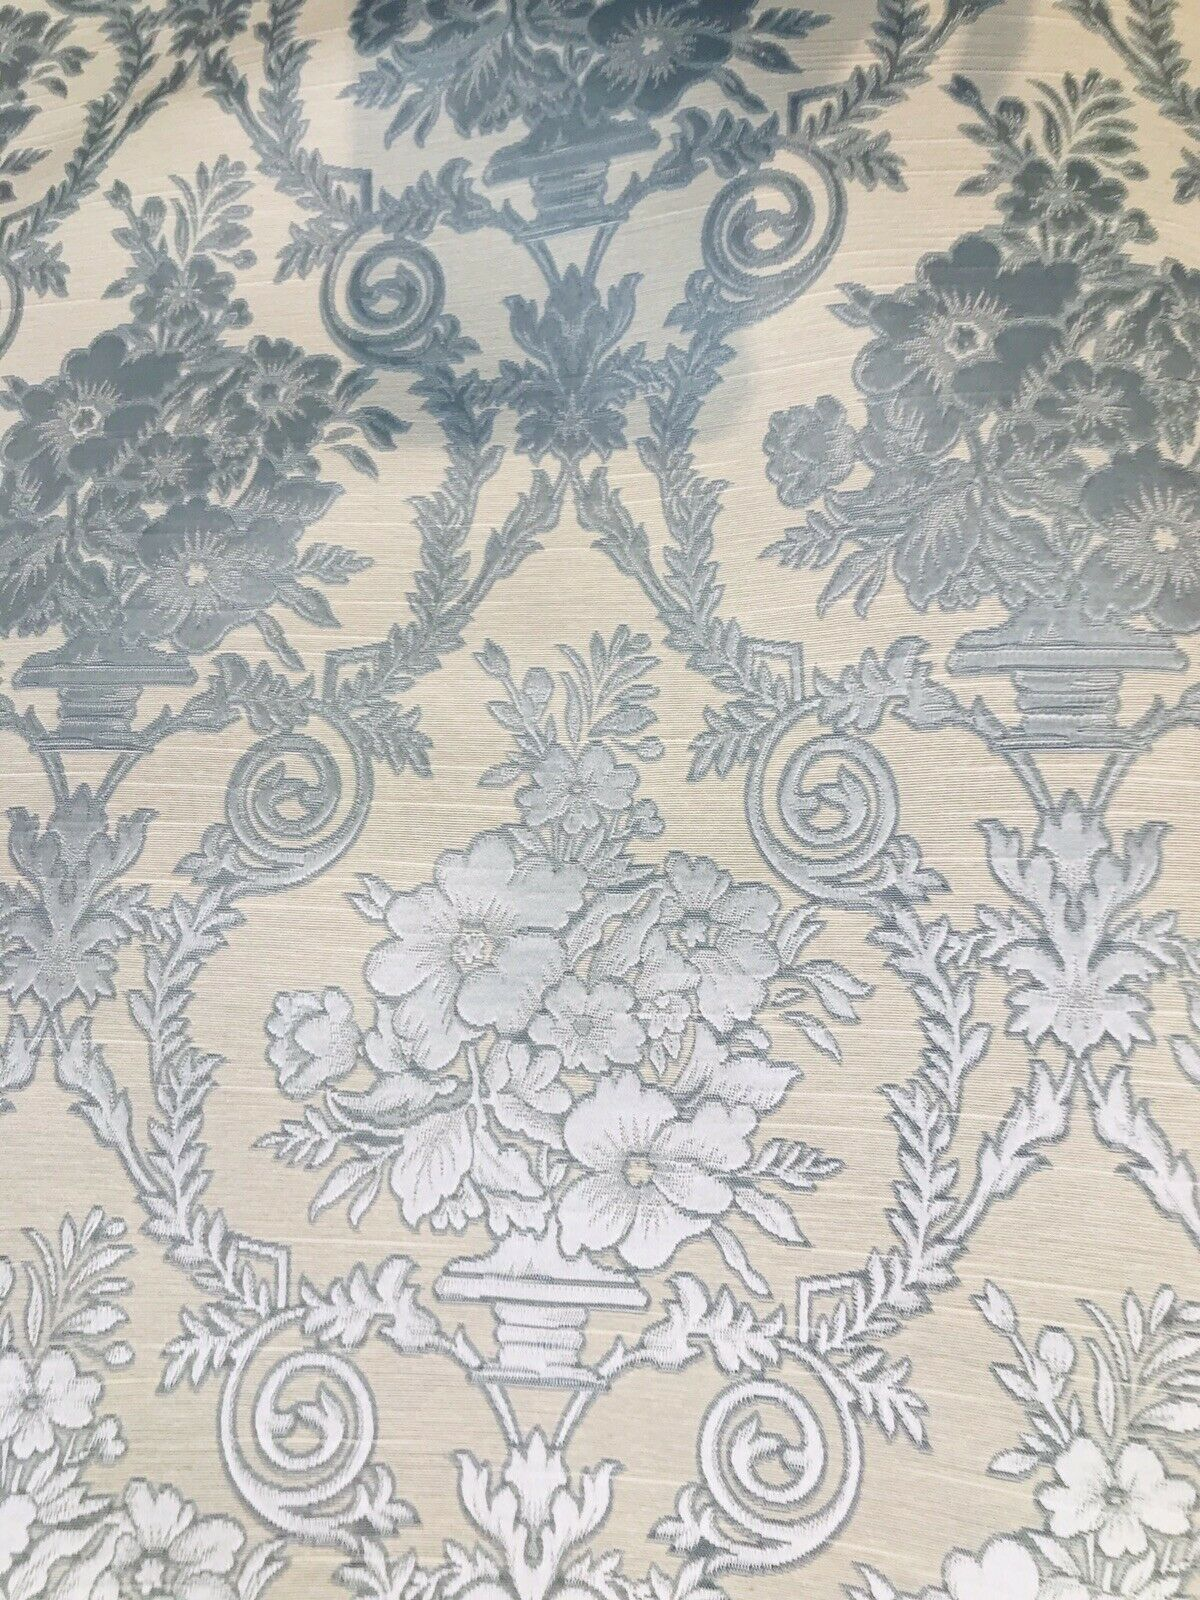 NEW! Designer Brocade Satin Fabric - Yellow Neoclassical Floral Upholstery Damask